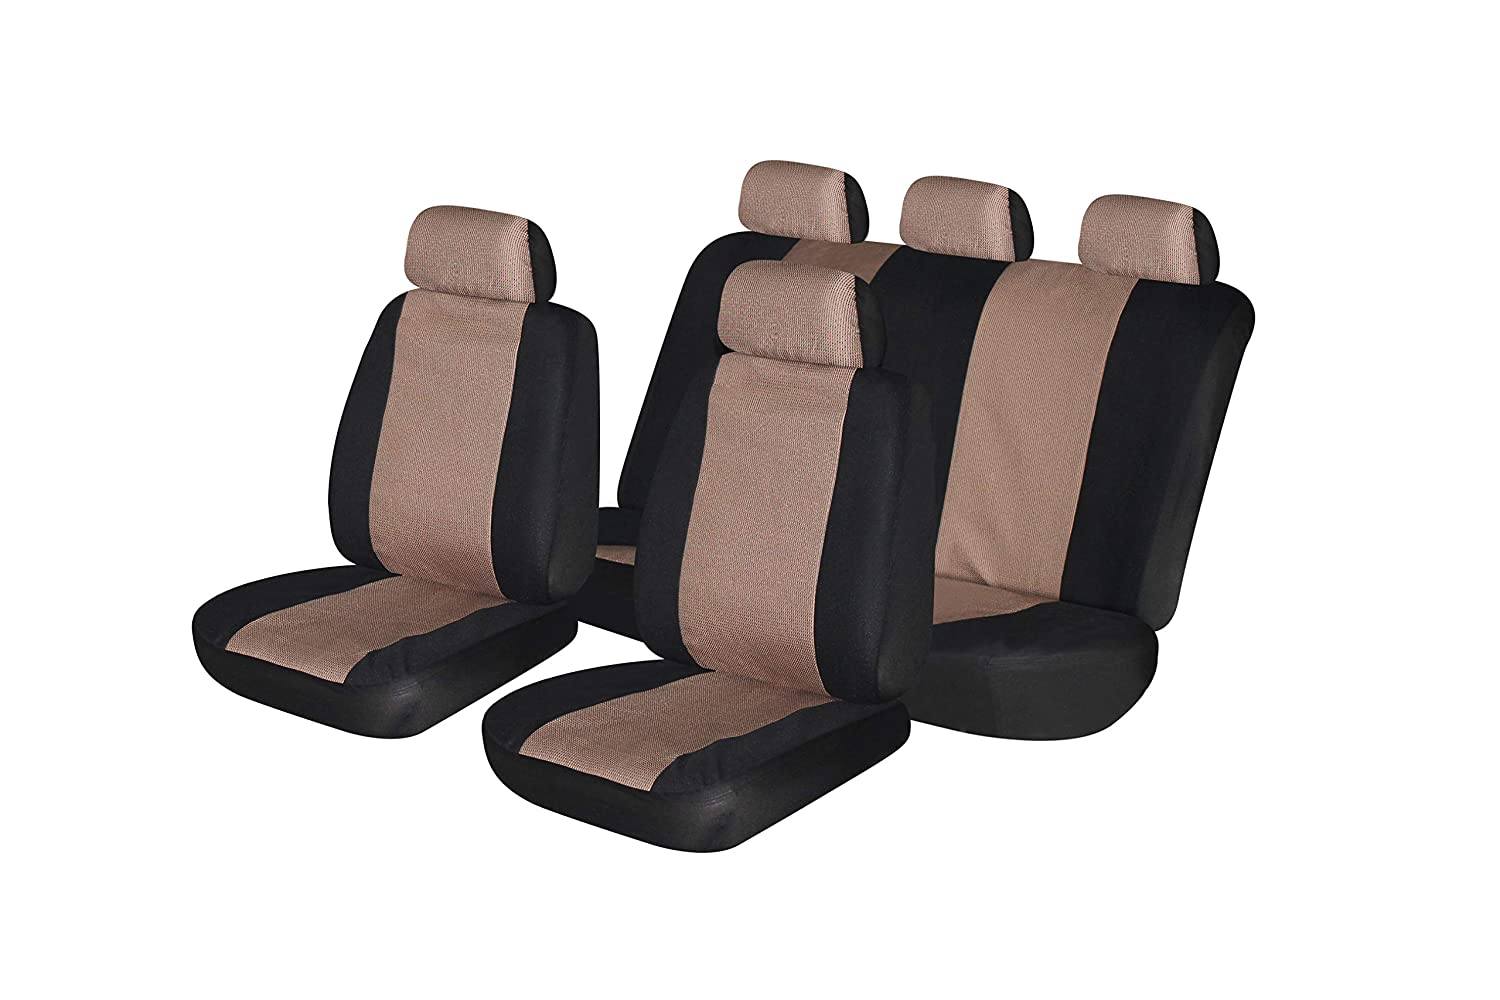 flatcloth Blue, Full Set Fit Most Car,Truck, SUV, or Van with headrest Airbag Compatible AUTONISE Universal fit Classic Sport Bucket seat Cover